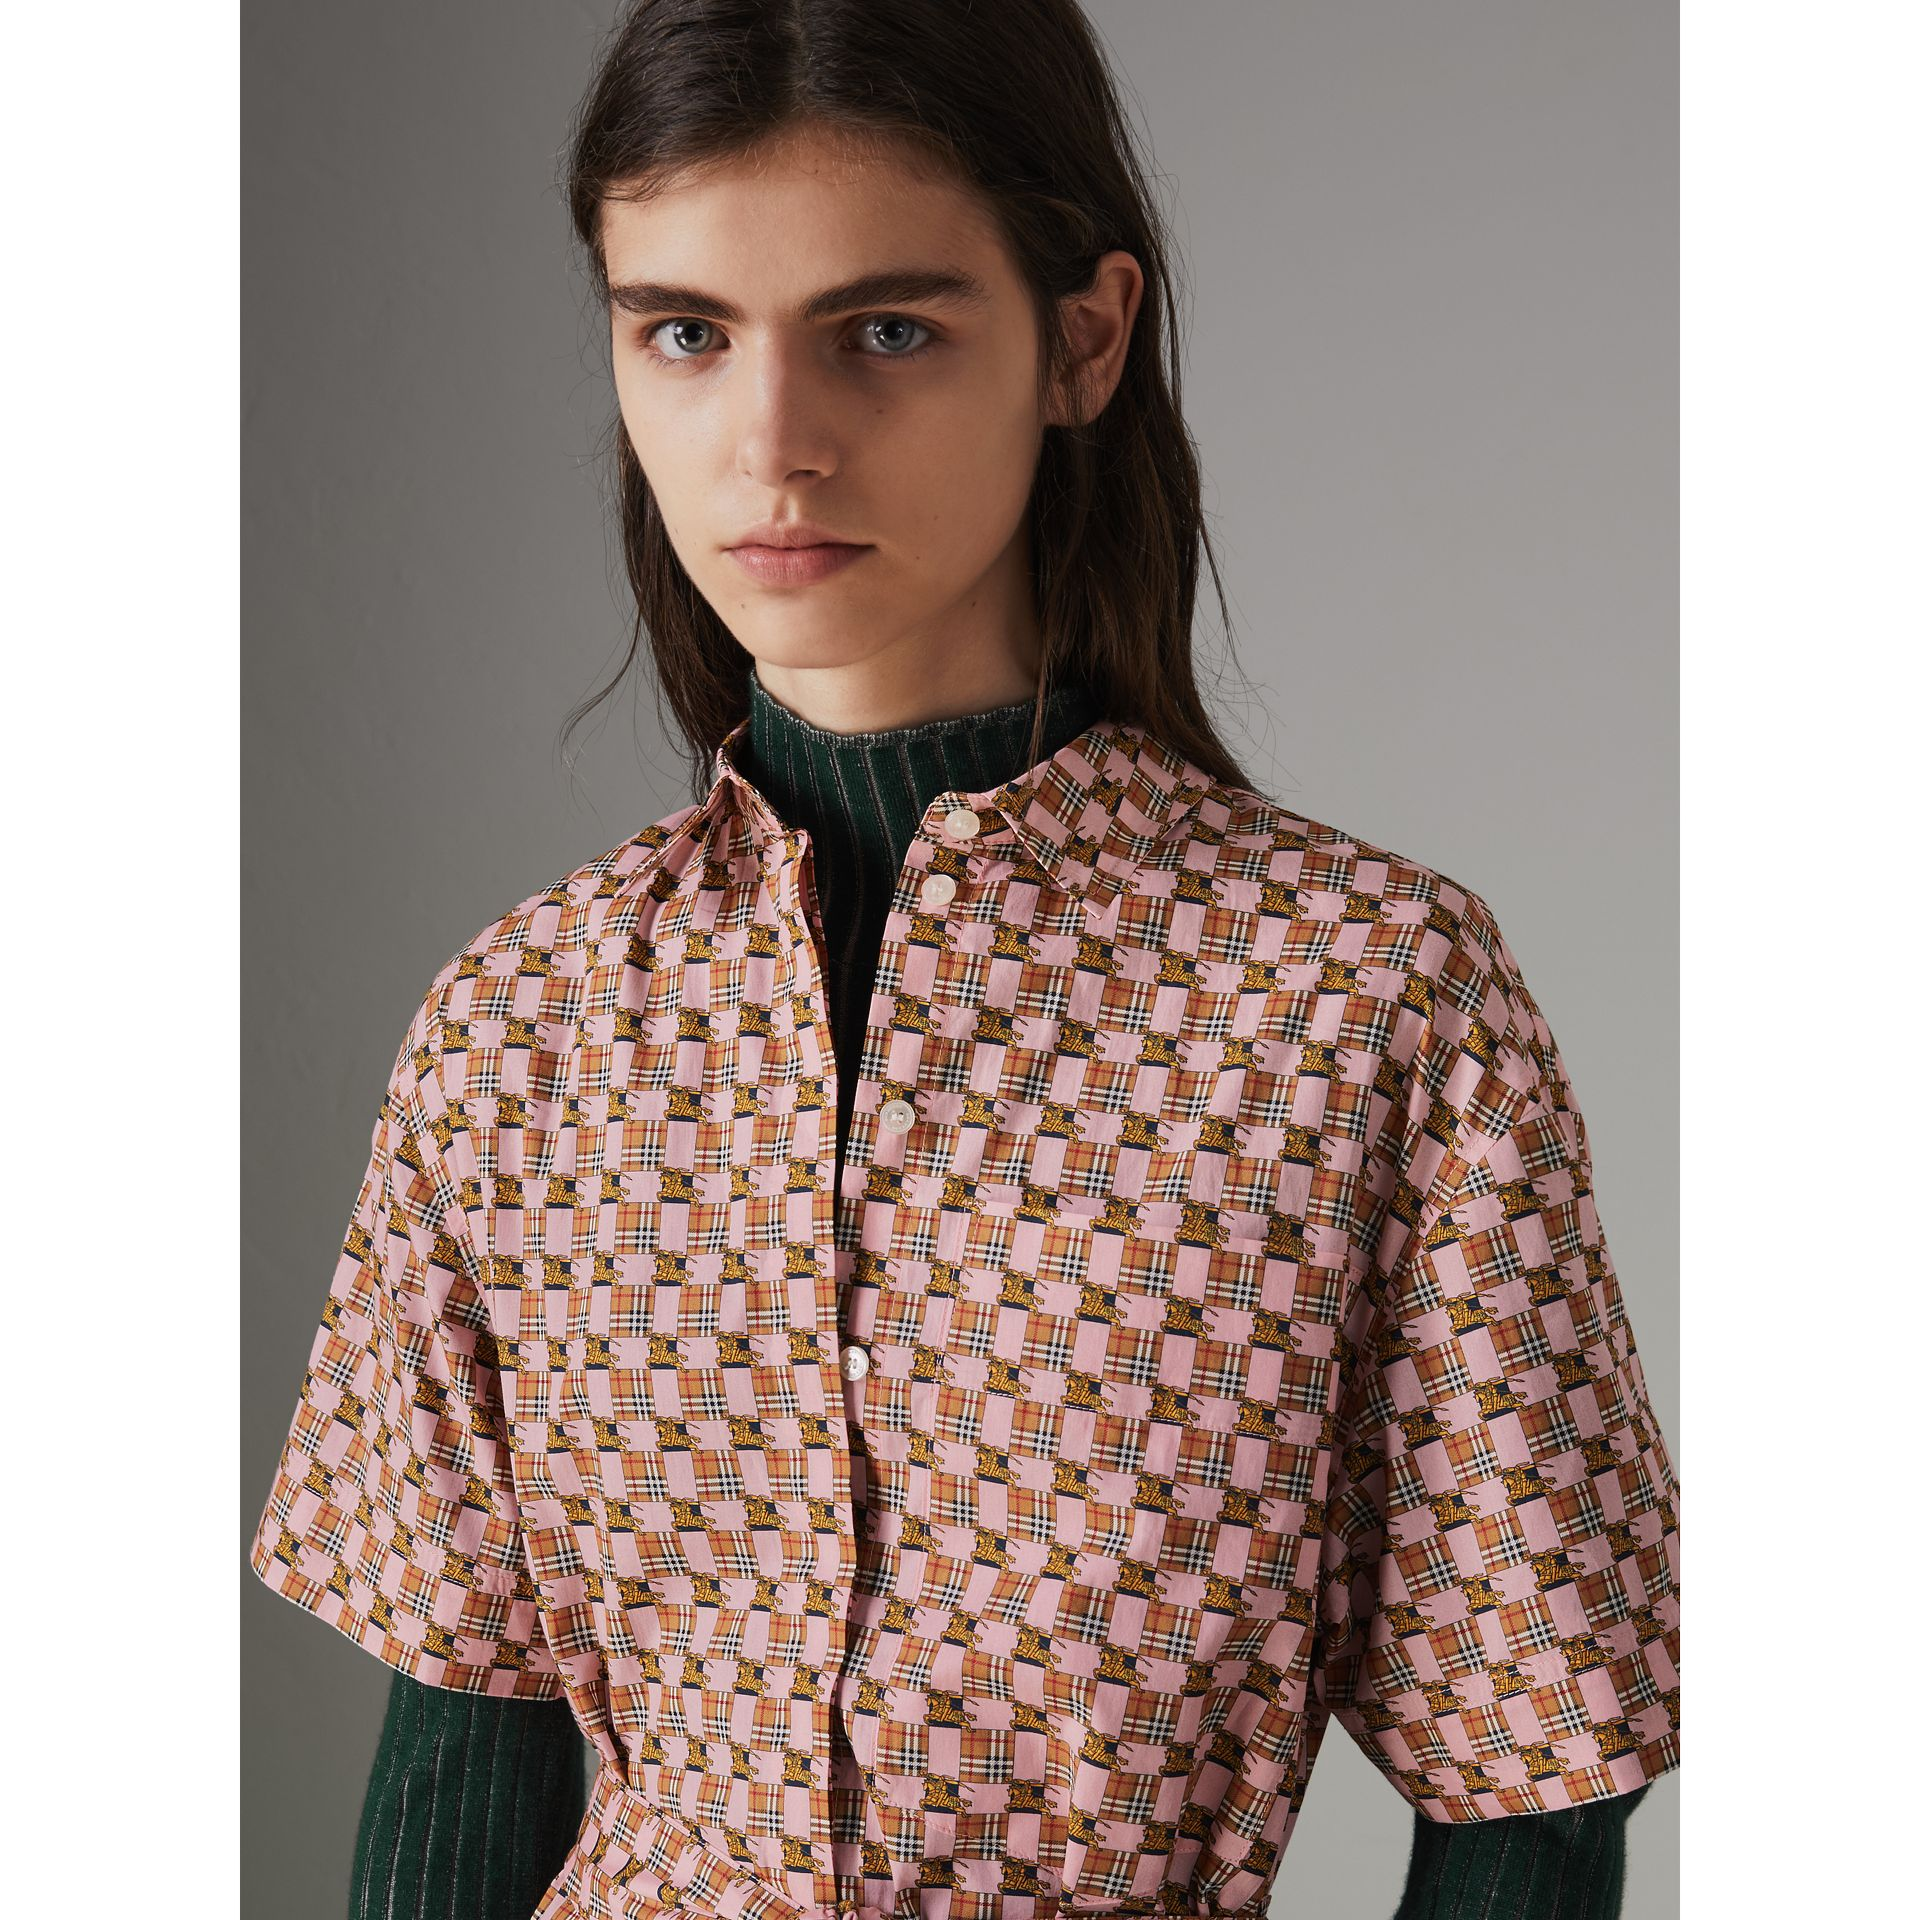 Tiled Archive Print Cotton Shirt Dress in Pink - Women | Burberry - gallery image 5